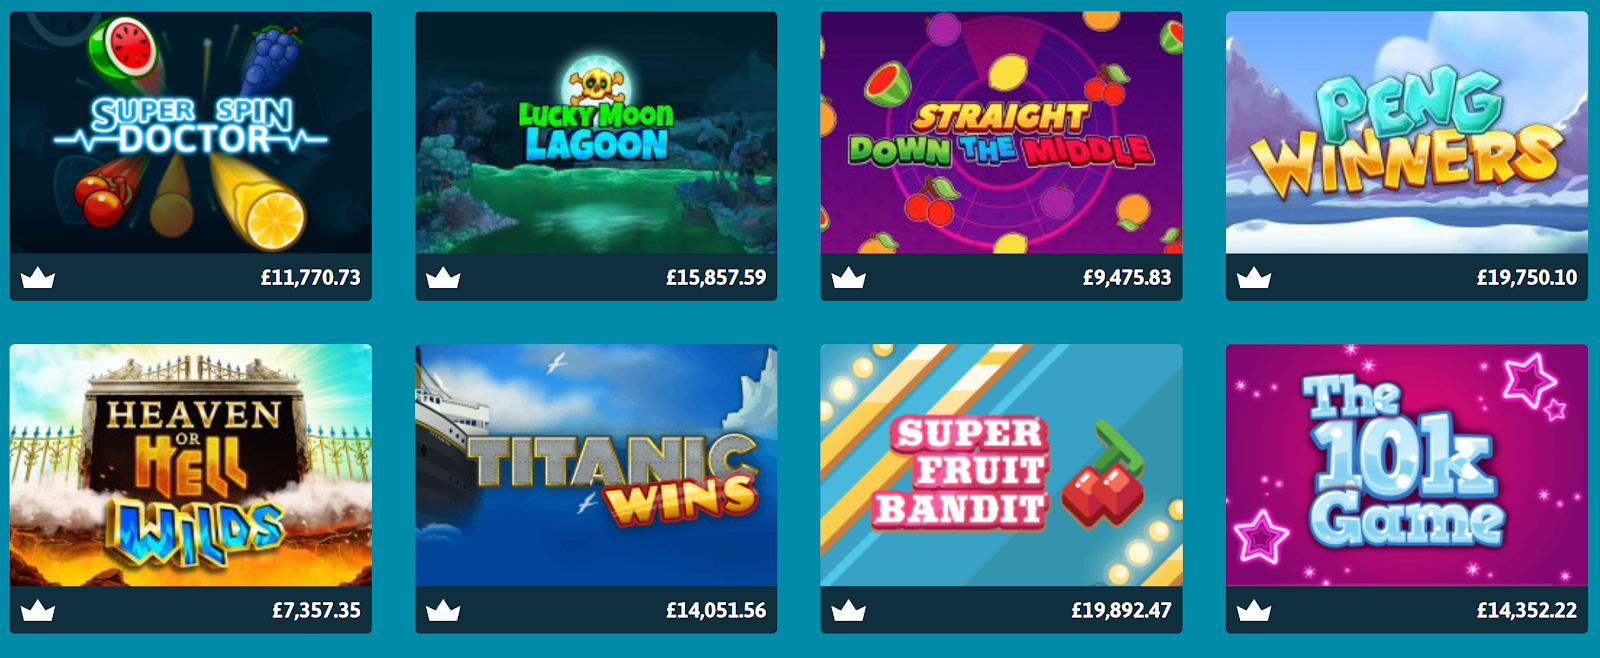 Dr Slot Casino is one of the best 200 deposit bonus casinos